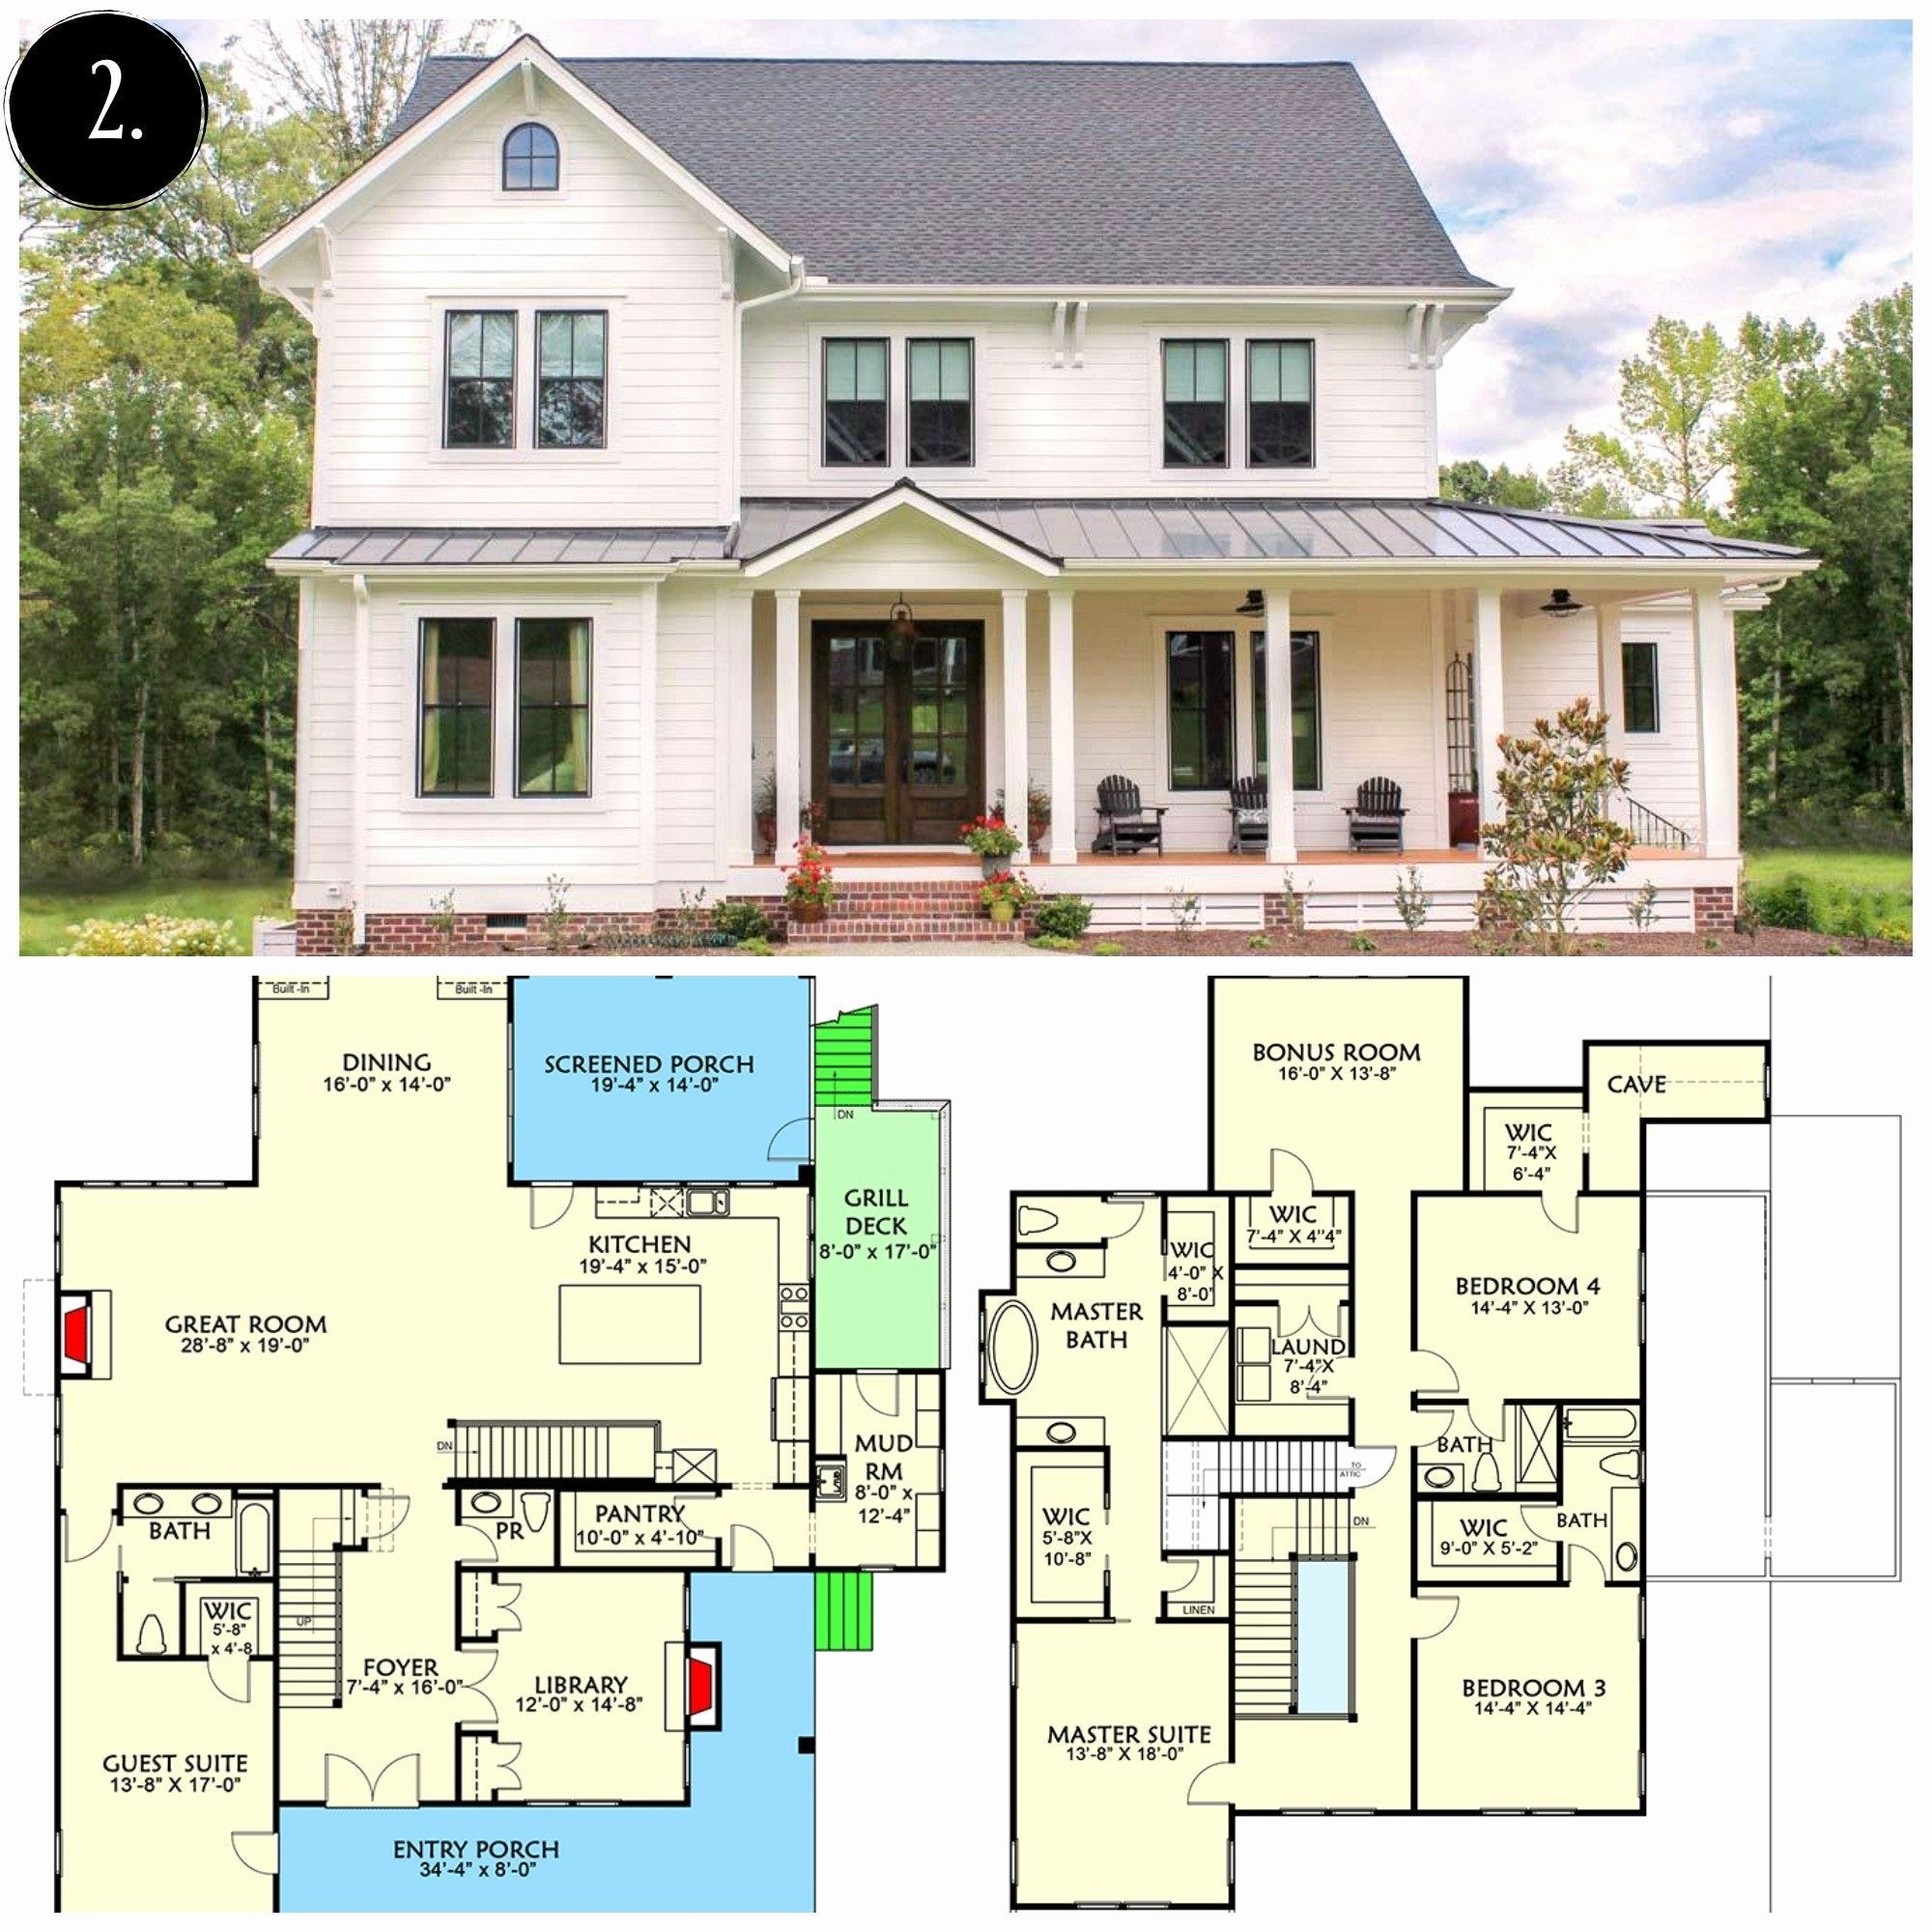 Just Found Best Farmhouse Floor Plans House Plans I Recommend This Site Best Picture An House Plans Farmhouse Modern Farmhouse Plans Farmhouse Floor Plans